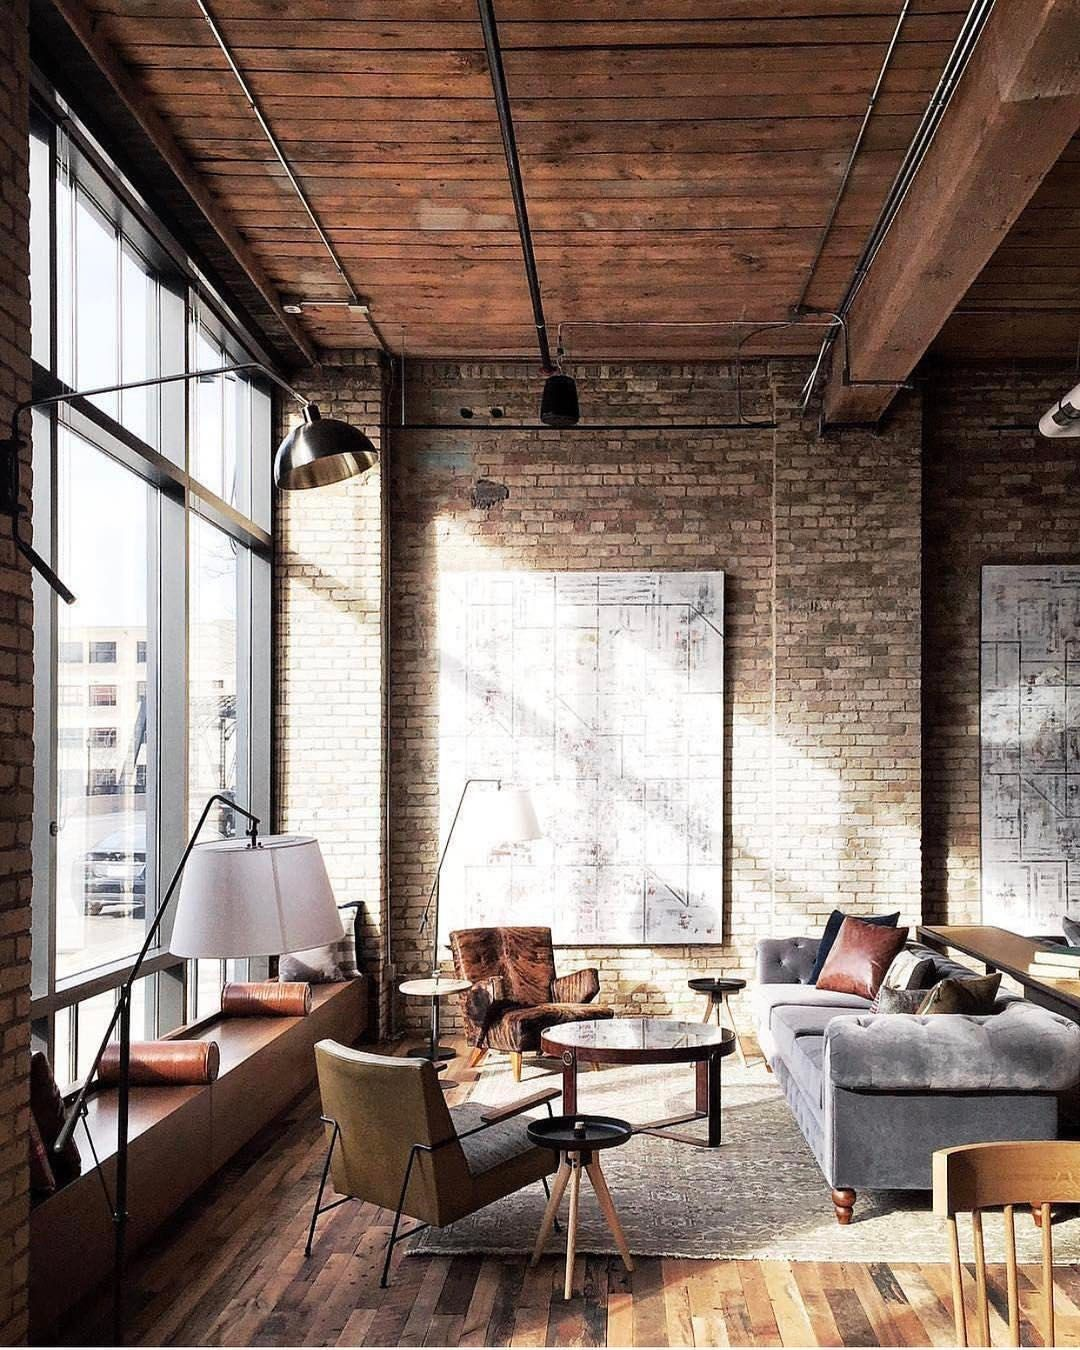 the hewing hotel is designed by esg architects and is located in minneapolis minnesota